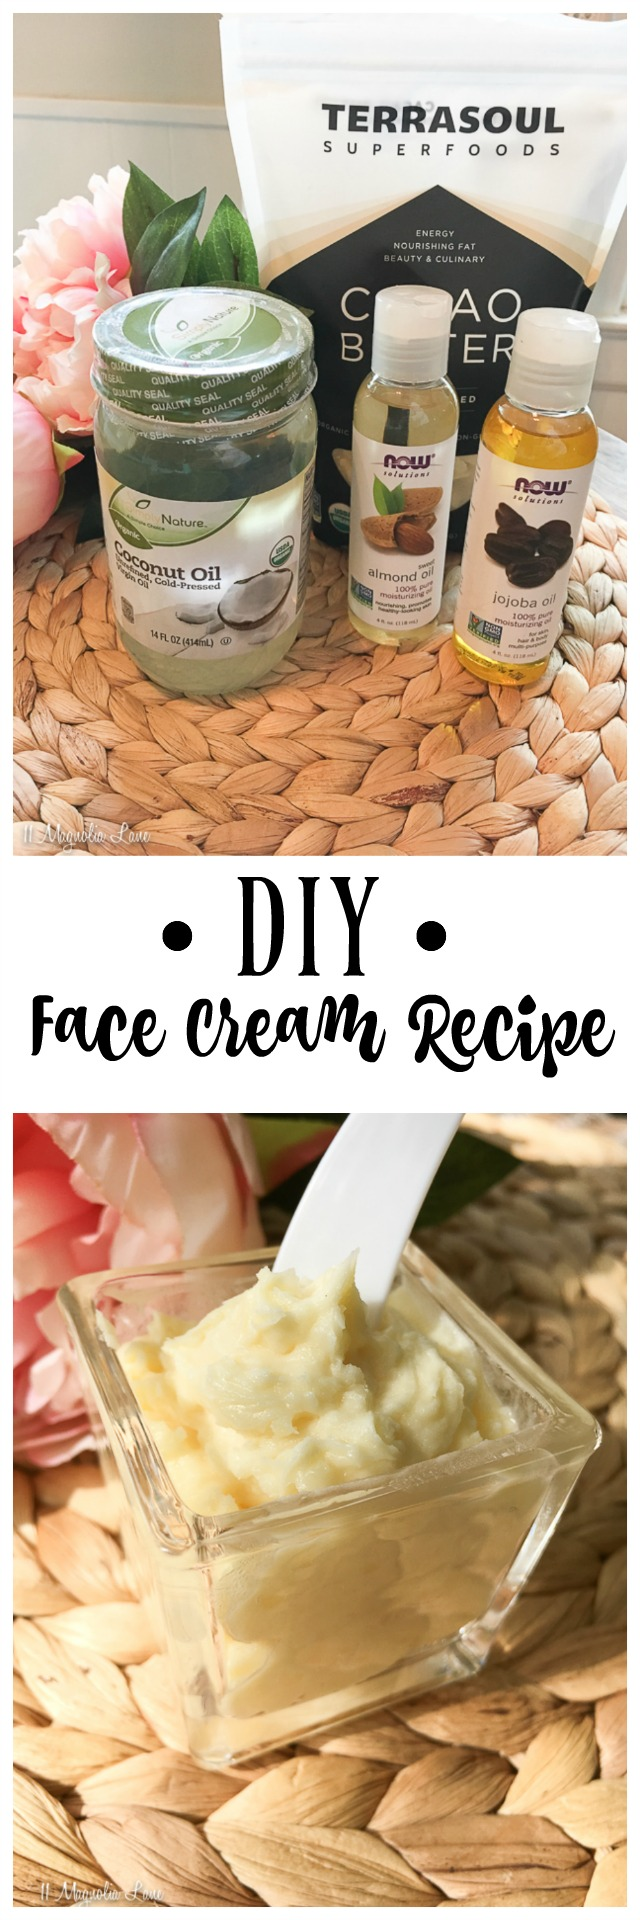 Make your own DIY organic face cream with this easy recipe.  Only five ingredients, and you can mix in your favorite essential oils like tea tree, frankincense, rose, lavender, and more. Much easier and inexpensive than fancy creams!